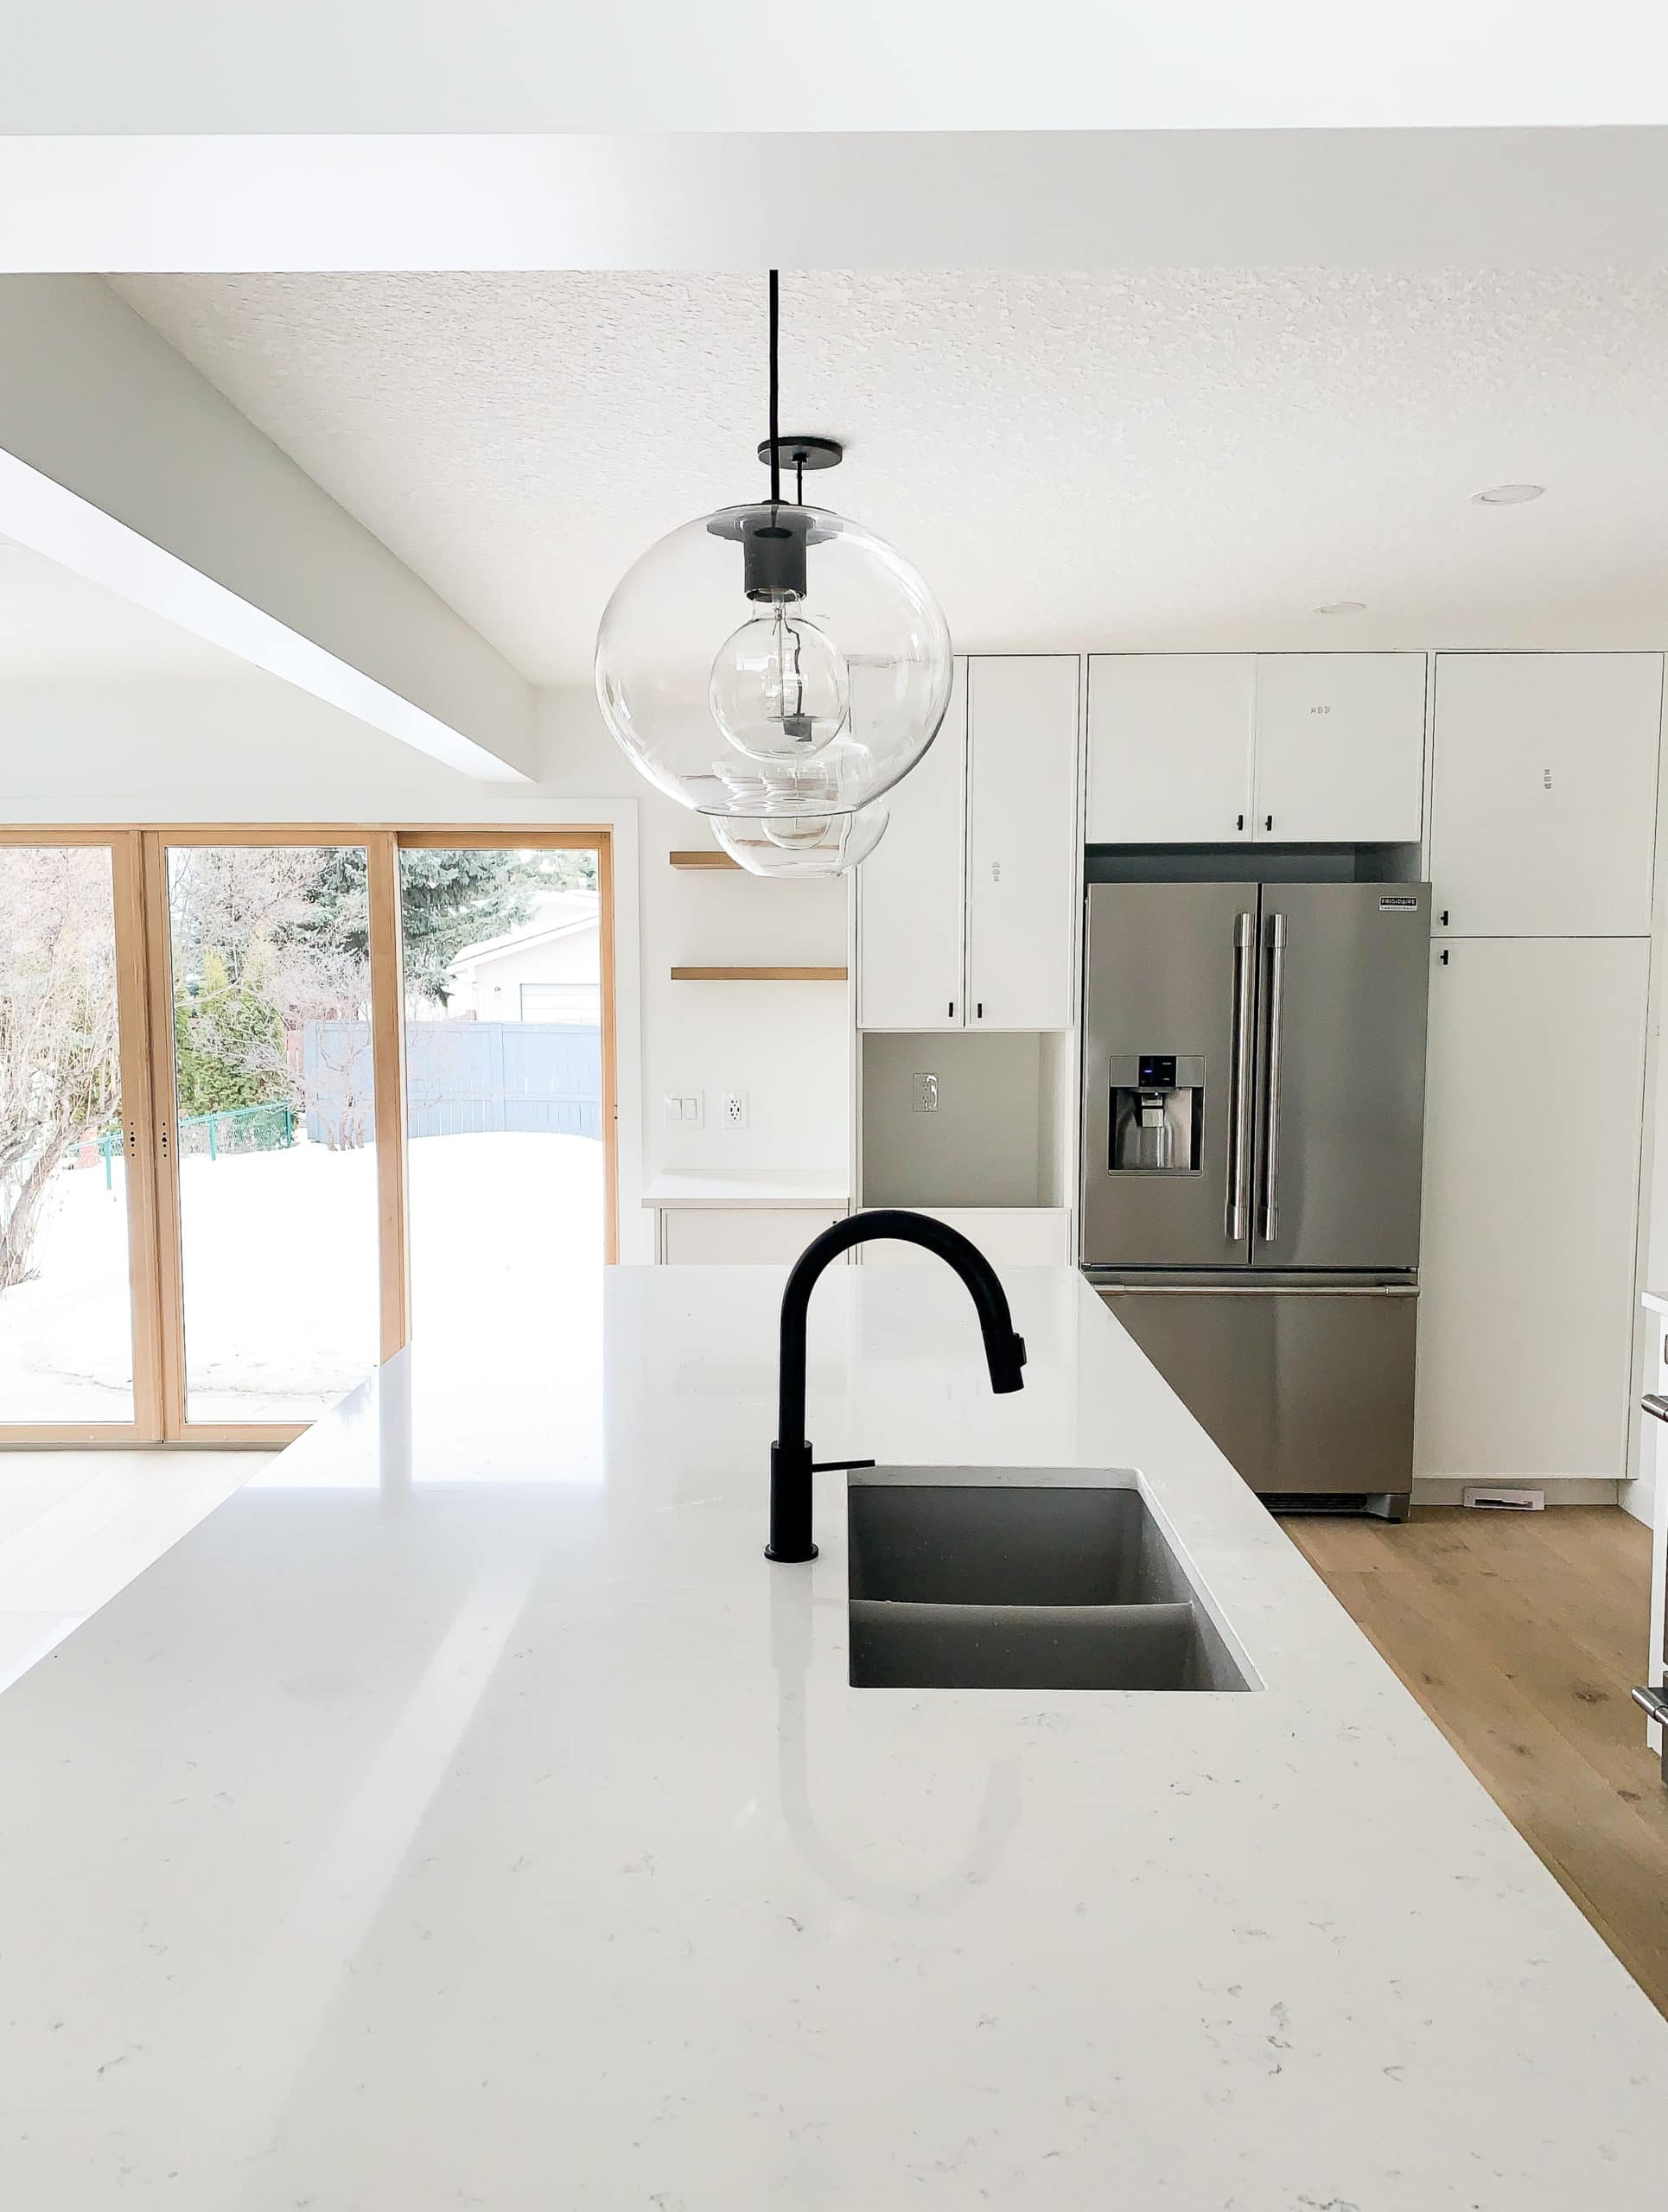 Full Home Renovation - Earthy Coastal Scandinavian California Minimal Kitchen Remodel